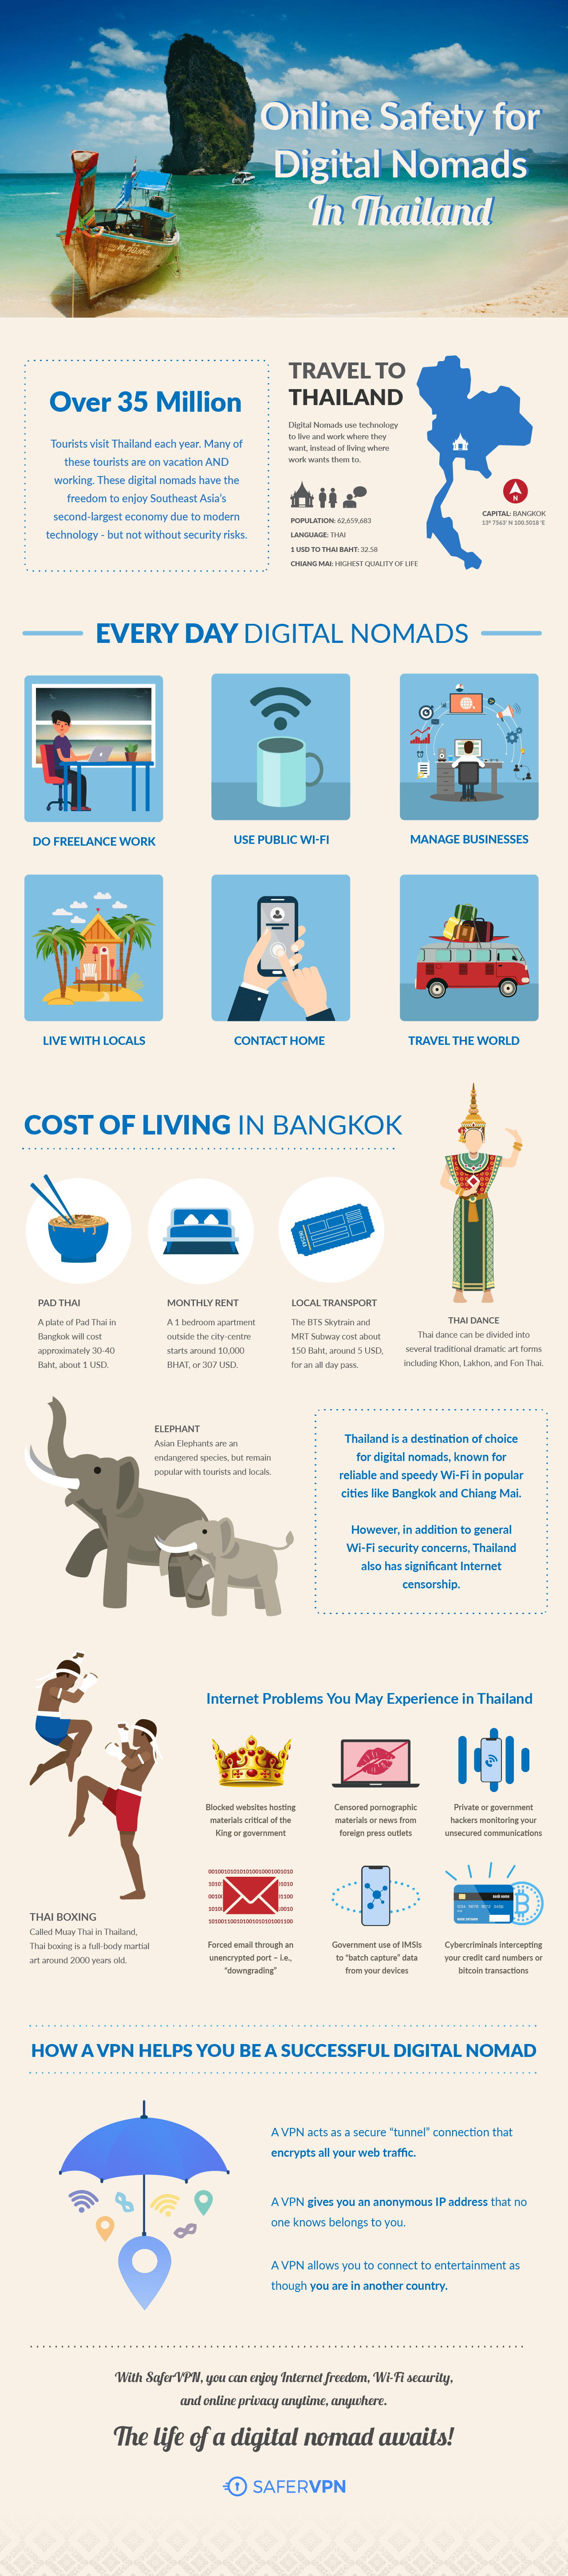 Infographic online safety digital nomads in Thailand